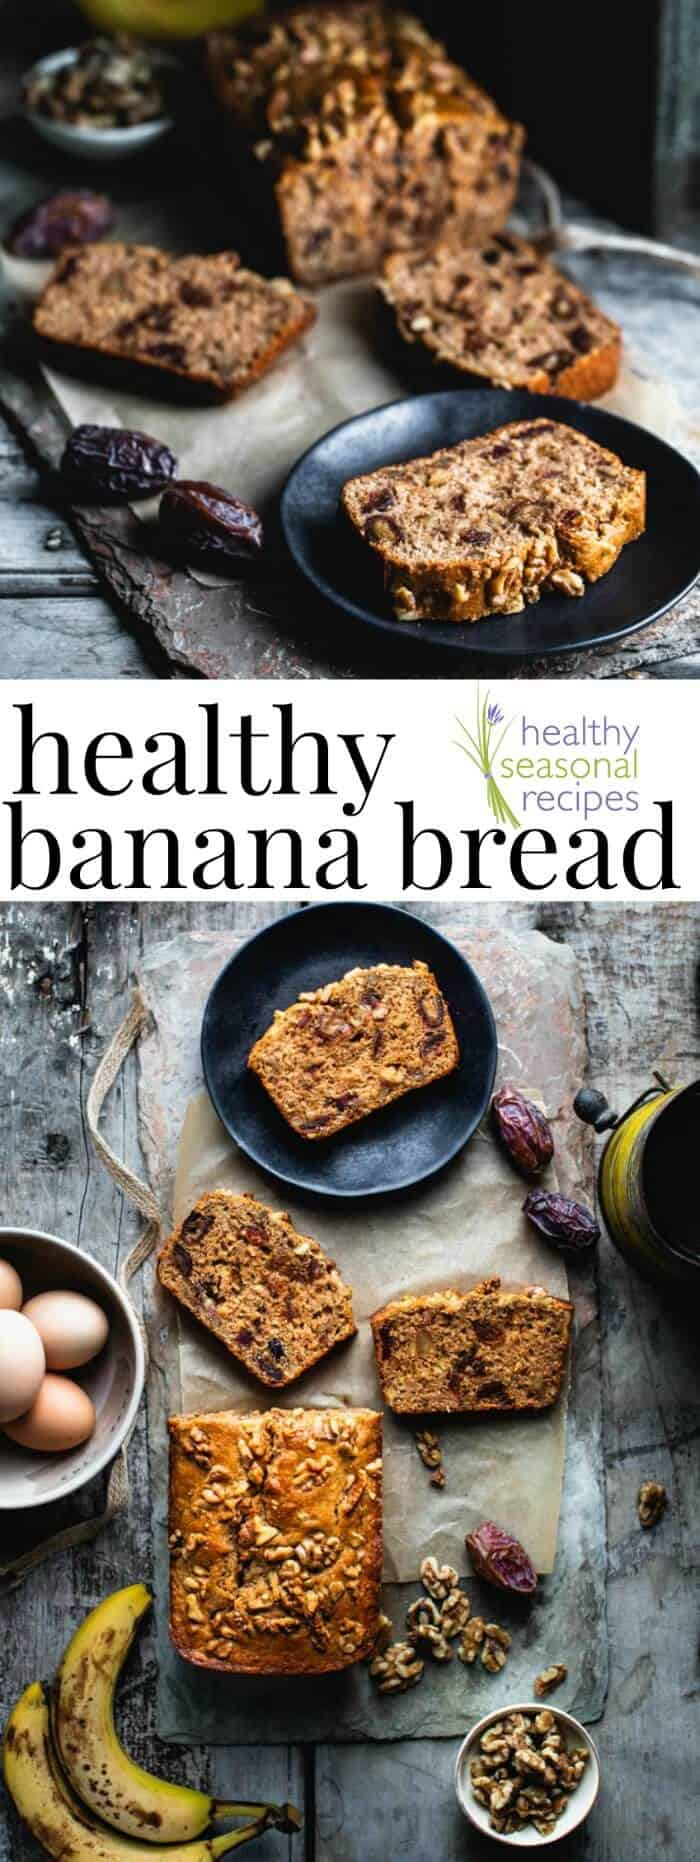 This whole-grain healthy banana bread is naturally sweetened with pure maple syrup and dates. Bonus: it's refined sugar-free! #wholewheat #norefinedsugar #healthy #baking #bananabread #snack #breakfast #easter #dates #walnuts #healthyseasonal #bread